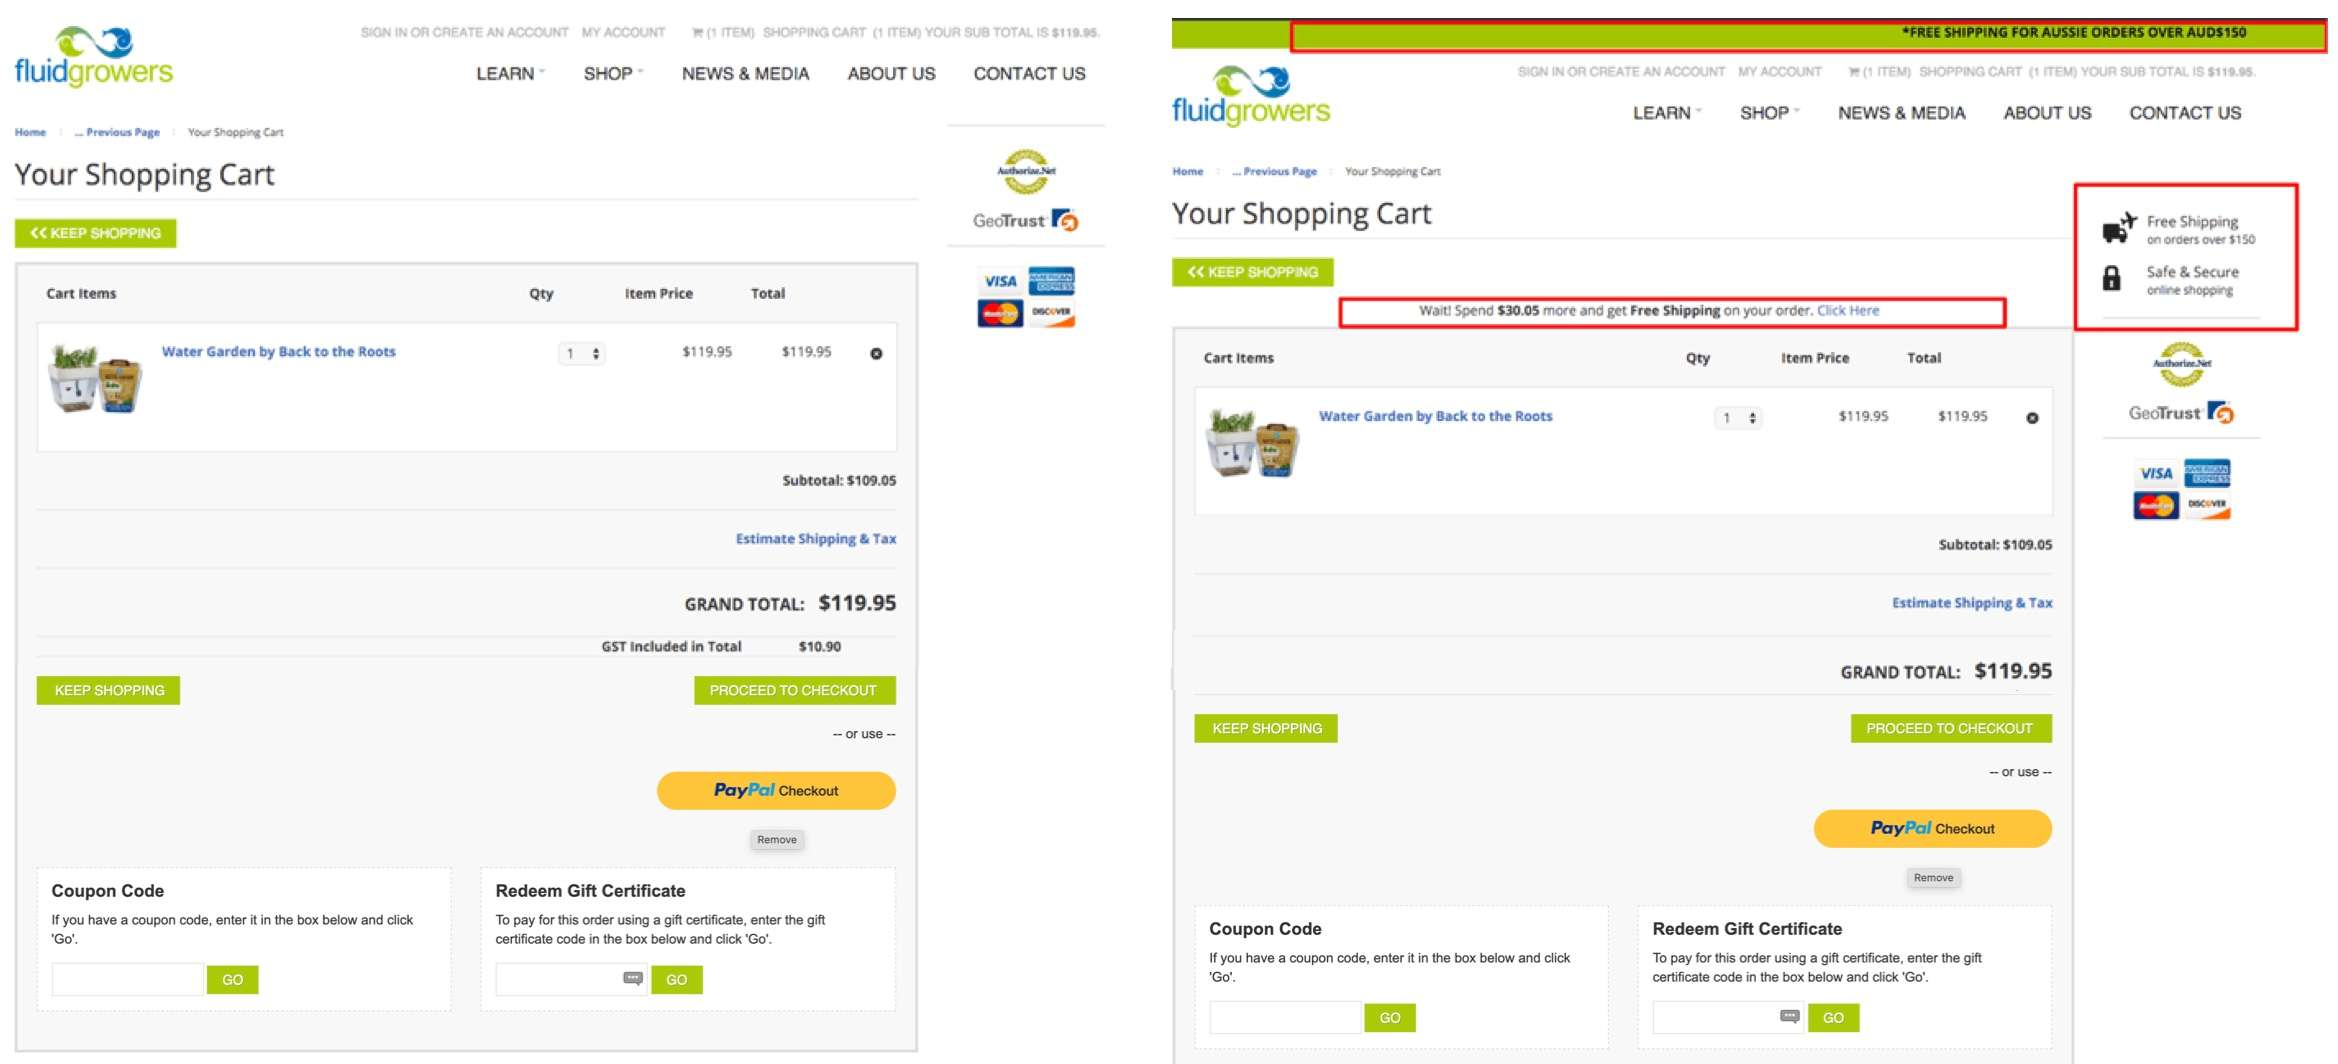 Adding free shipping information to the cart page   +39%